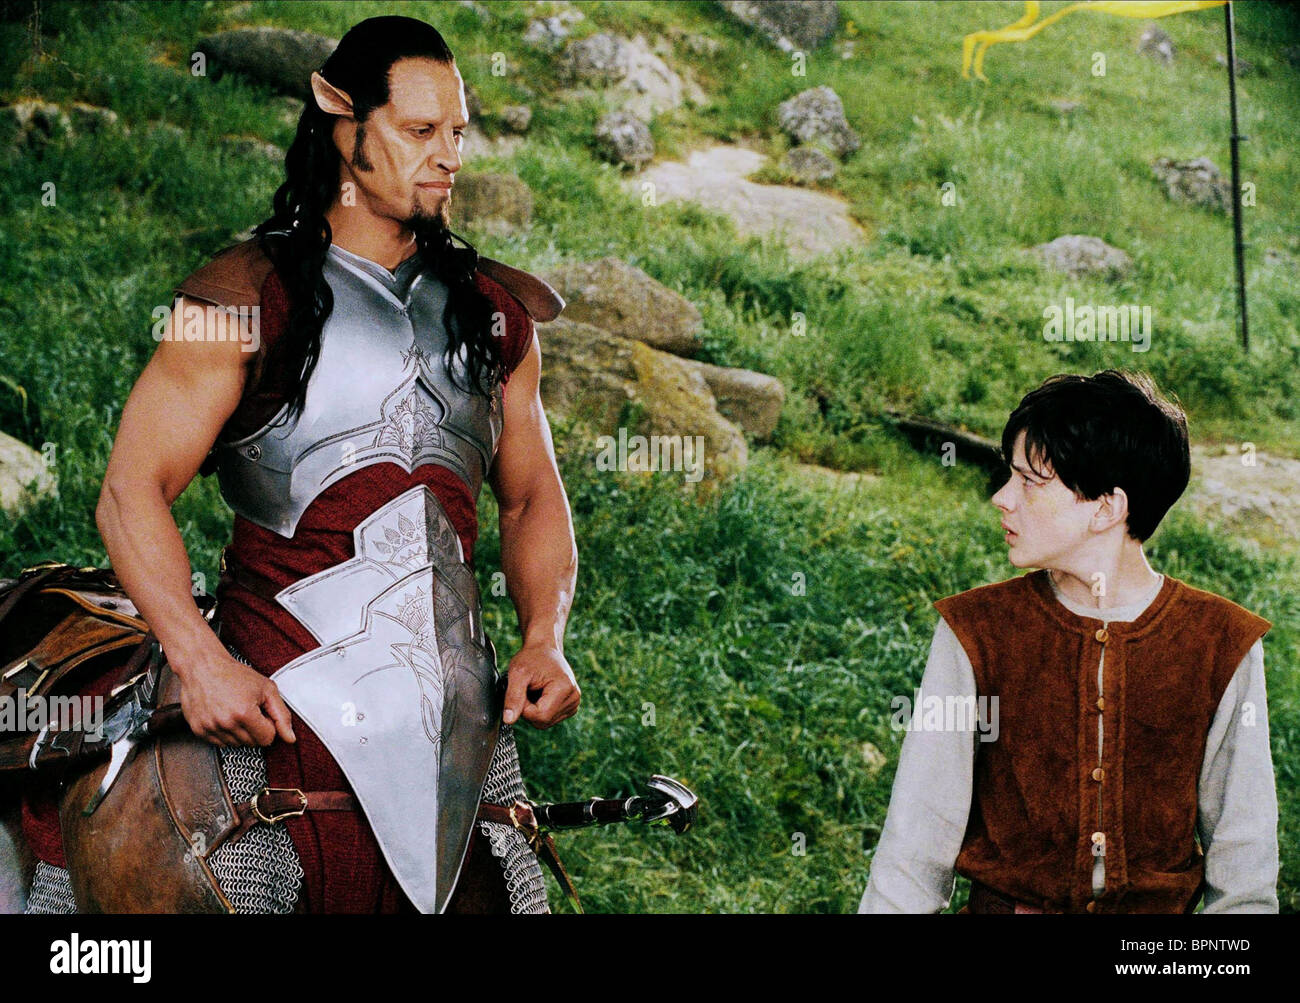 PATRICK KAKE & SKANDAR KEYNES THE CHRONICLES OF NARNIA: THE LION THE WITCH AND THE WARDROBE (2005) - Stock Image